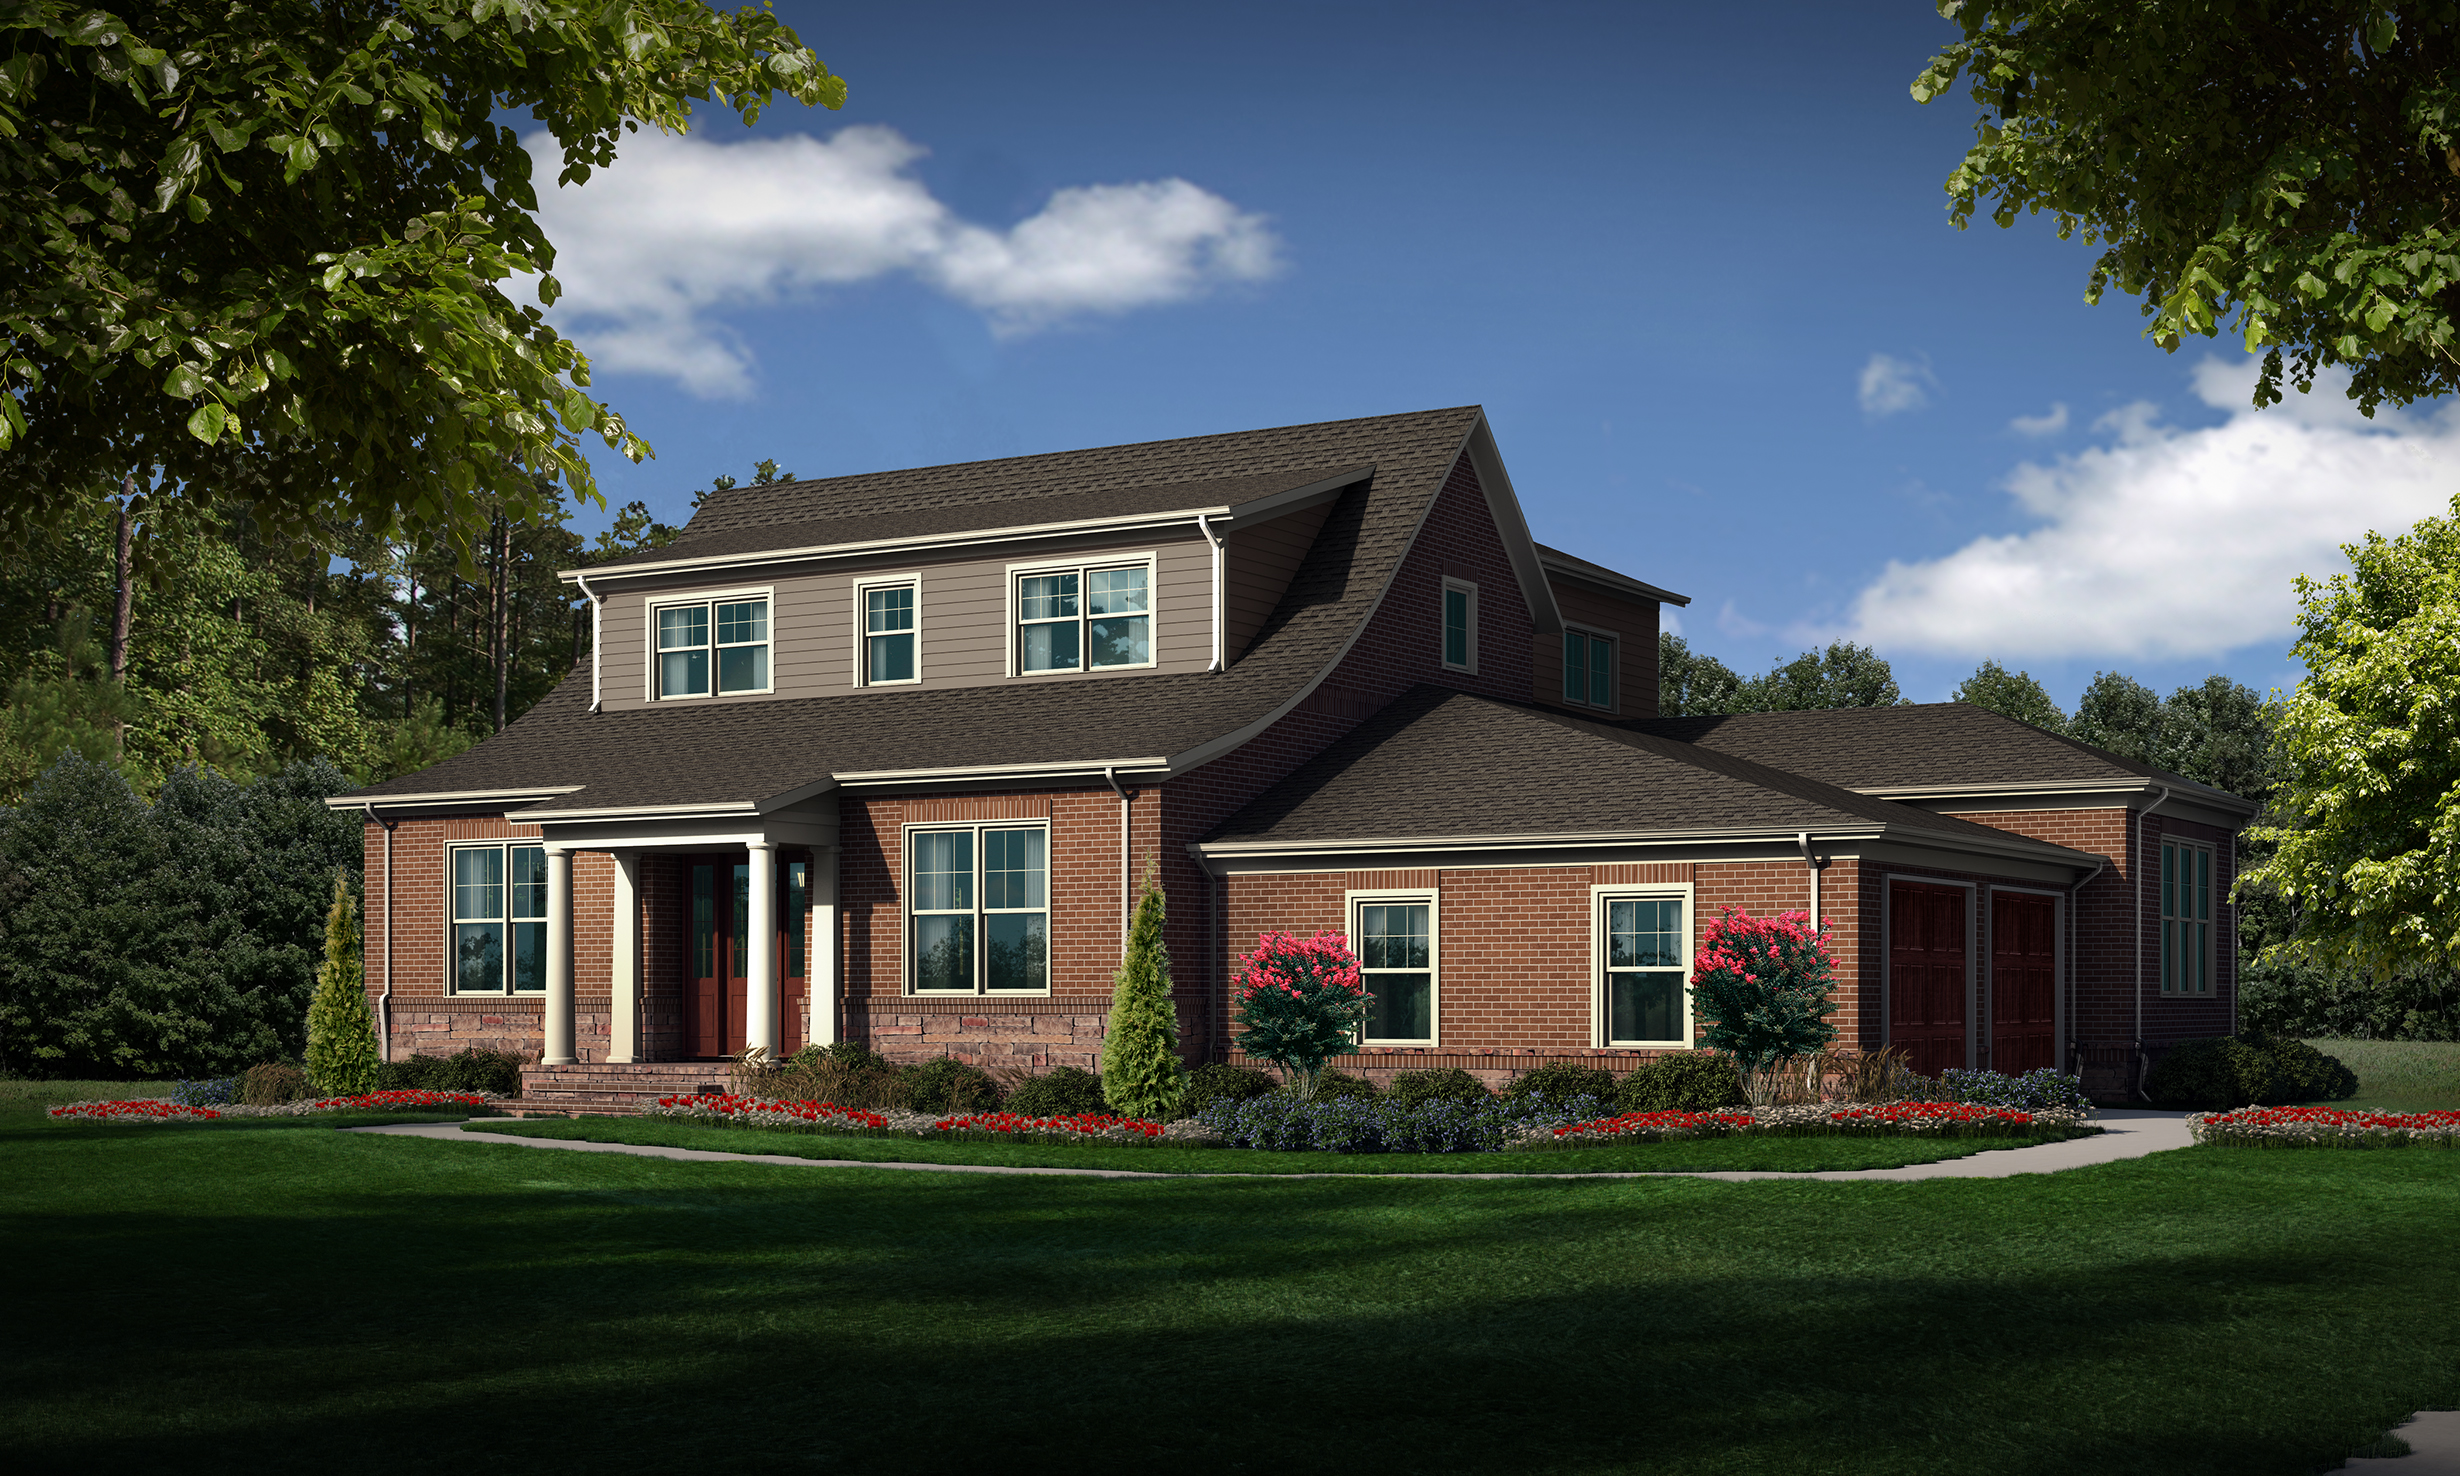 """Option C (Brick)  Total SF 4881 sq. ft. Total SF heated 3771 sq. ft. Bedrooms 4 Bathrooms 4.5 Width: 66'-6"""" Depth: 71'-6"""" Attached two-car garage Bonus room Rear covered porch Front covered porch"""